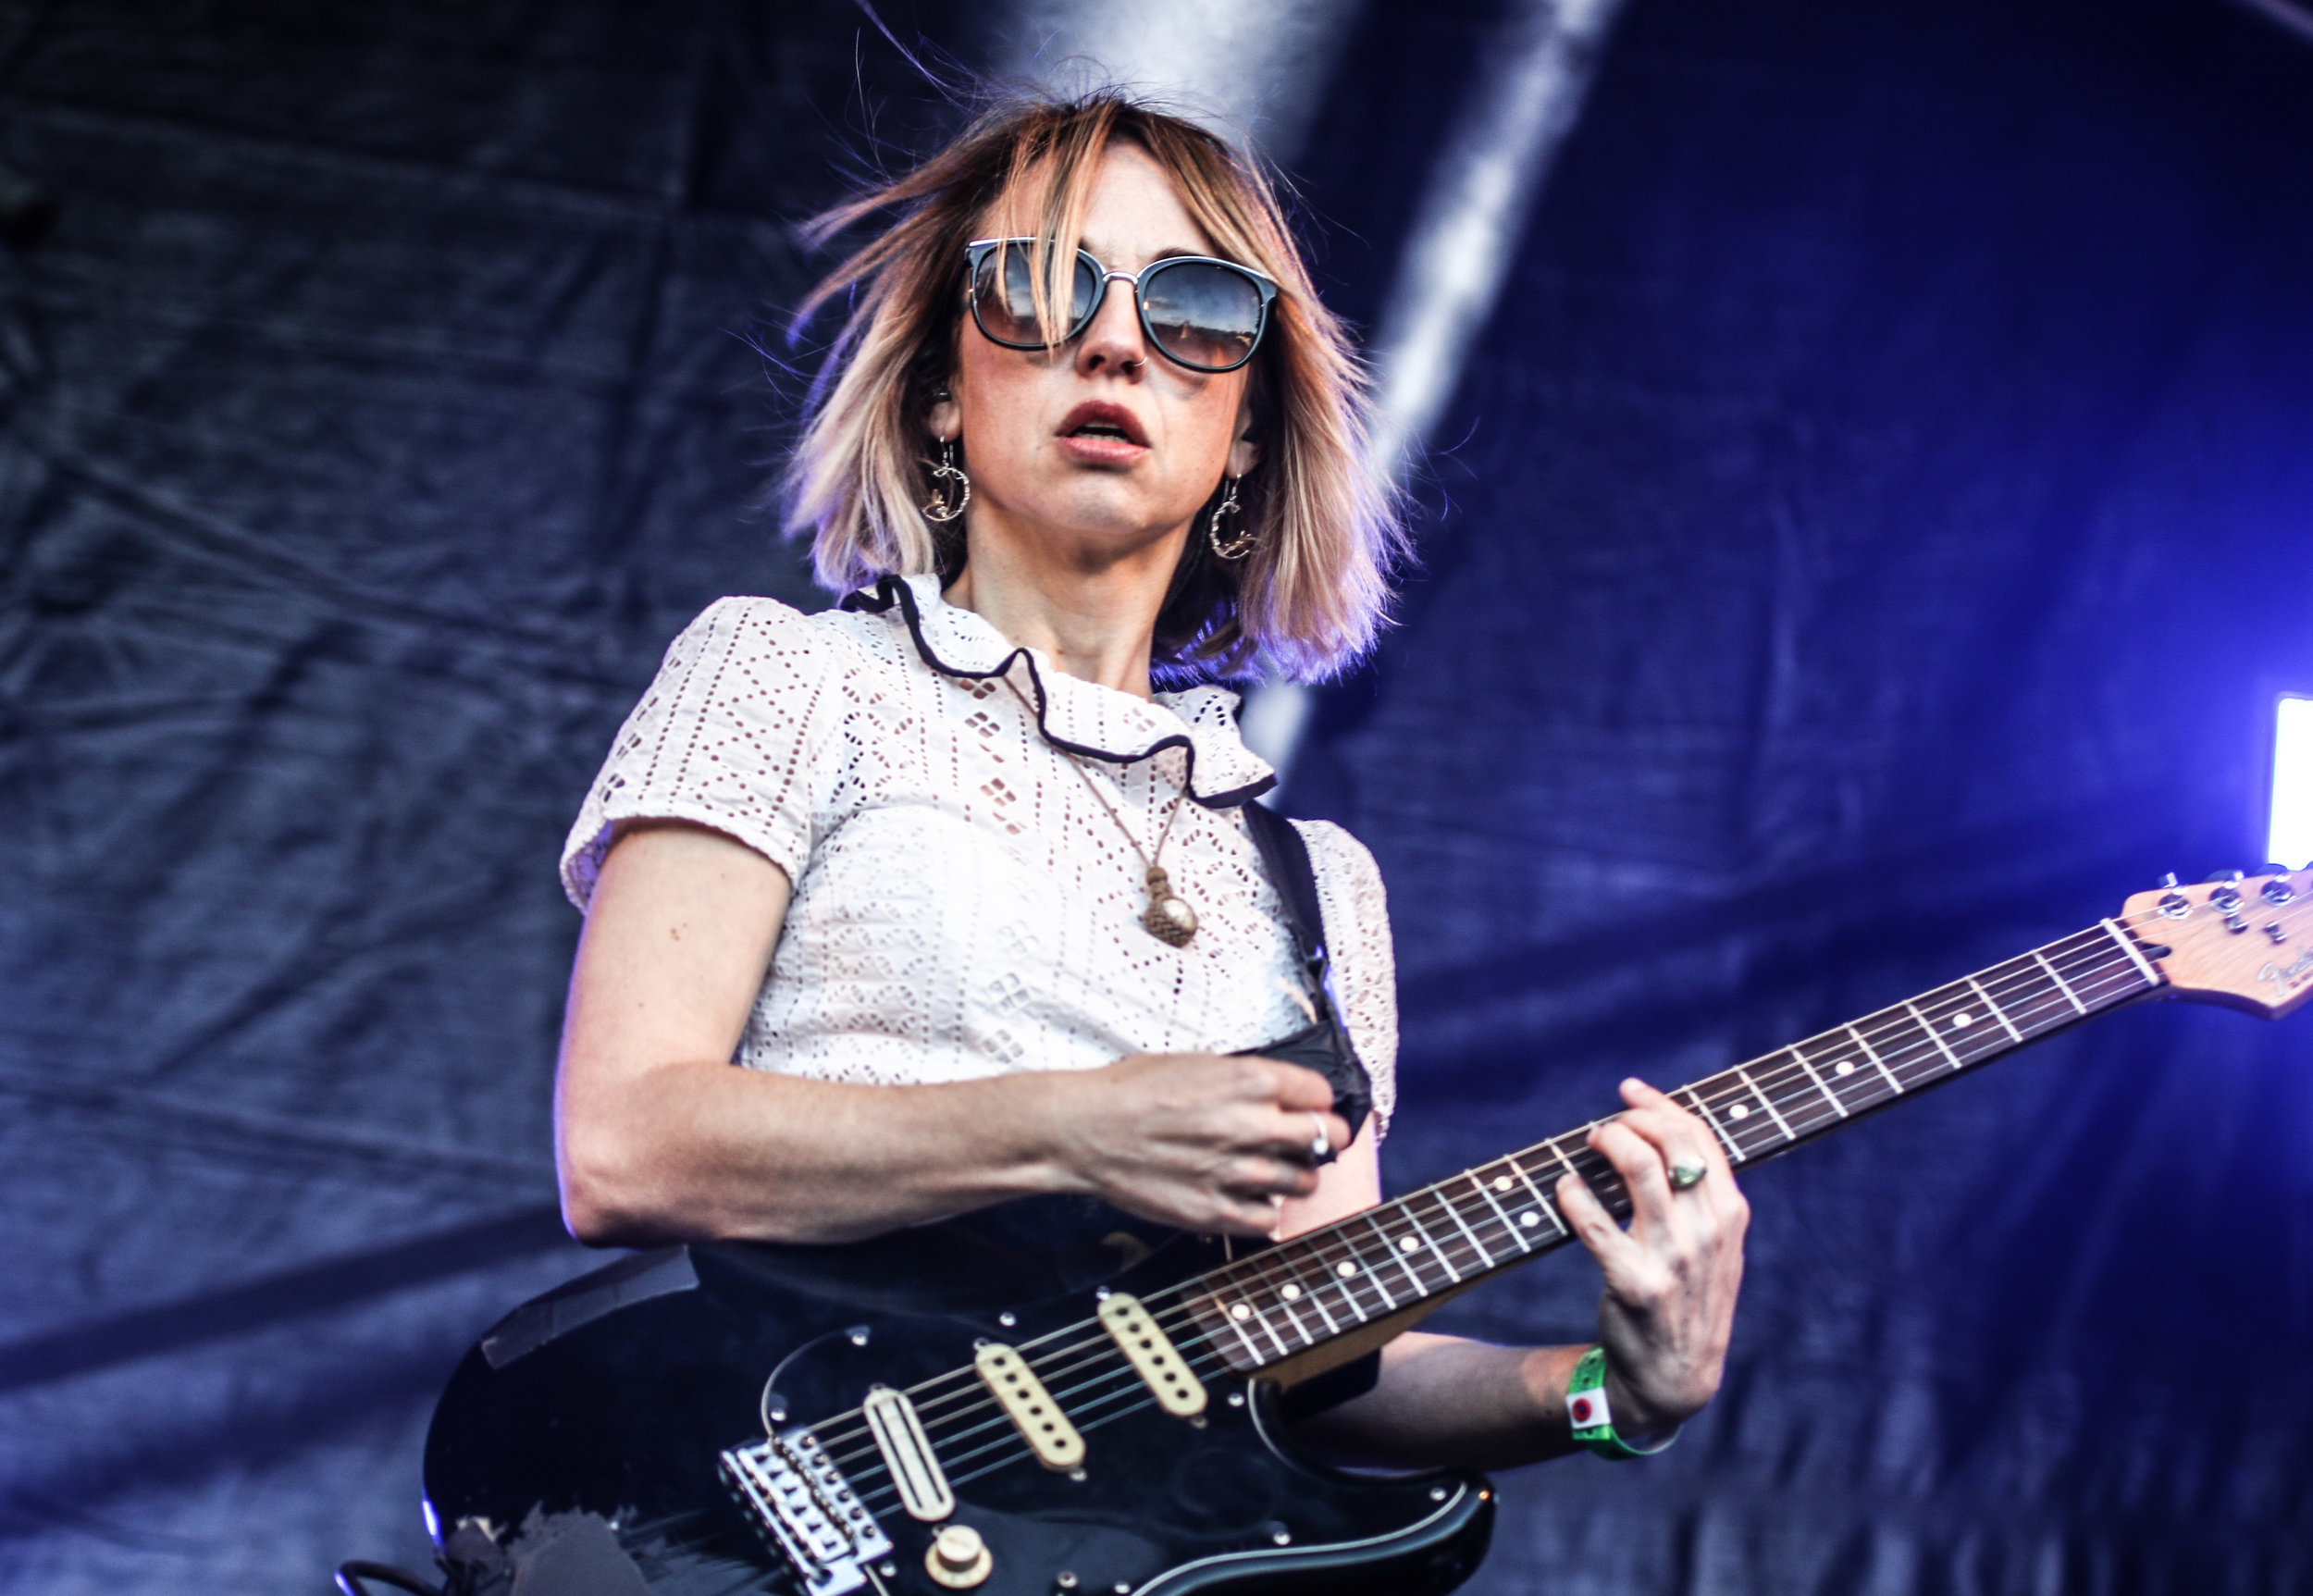 The Joy Formidable - Hardwick Live - 18-19-08.19-2.jpg